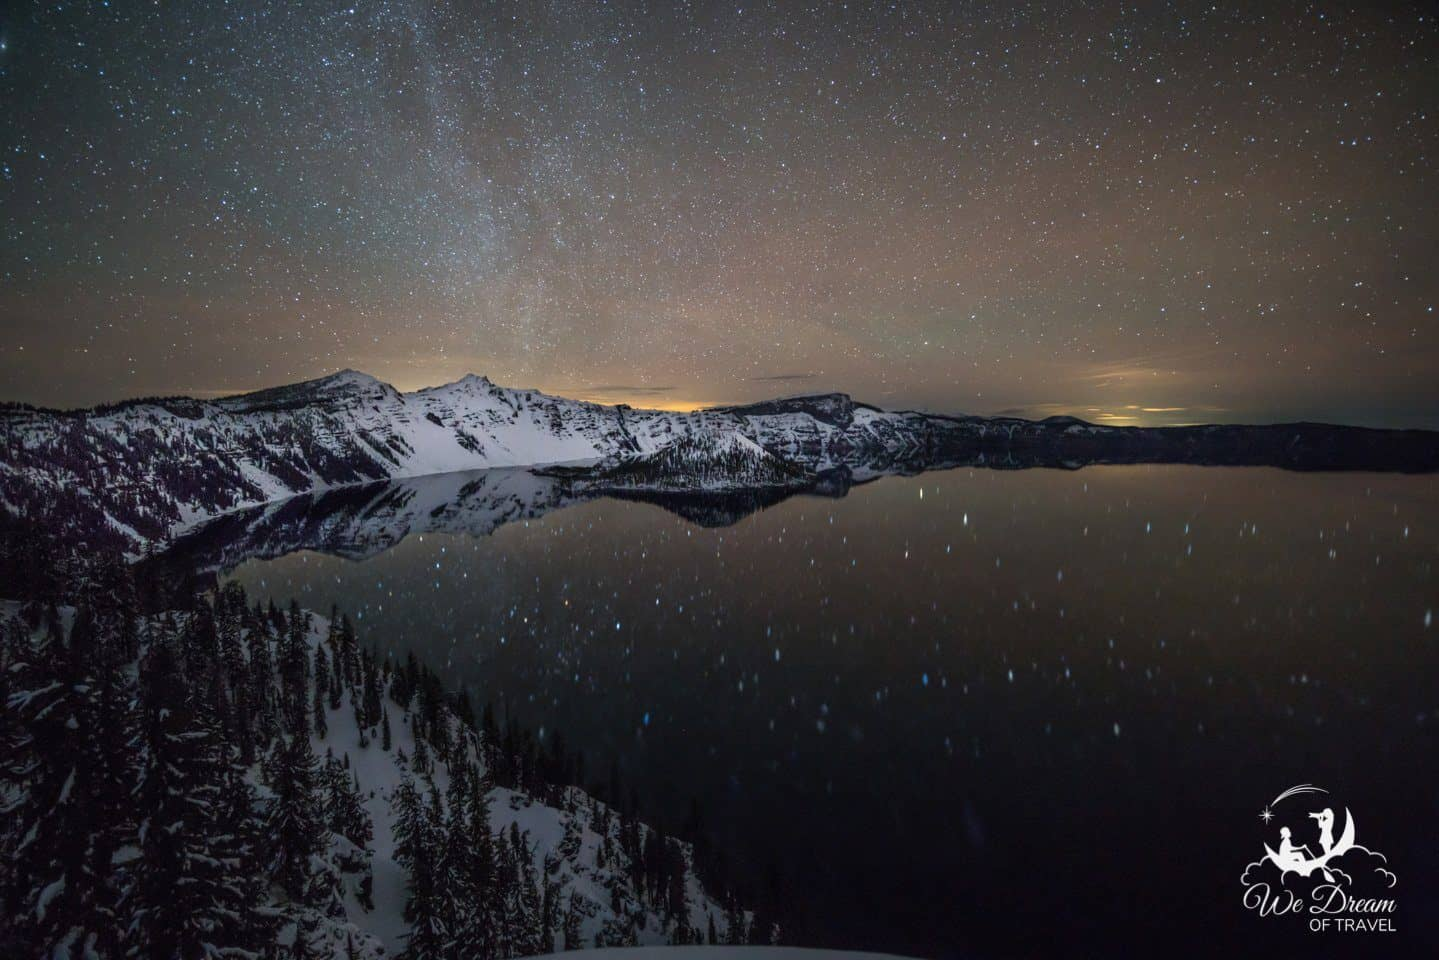 Night Photography from Crater Lake National Park in Oregon